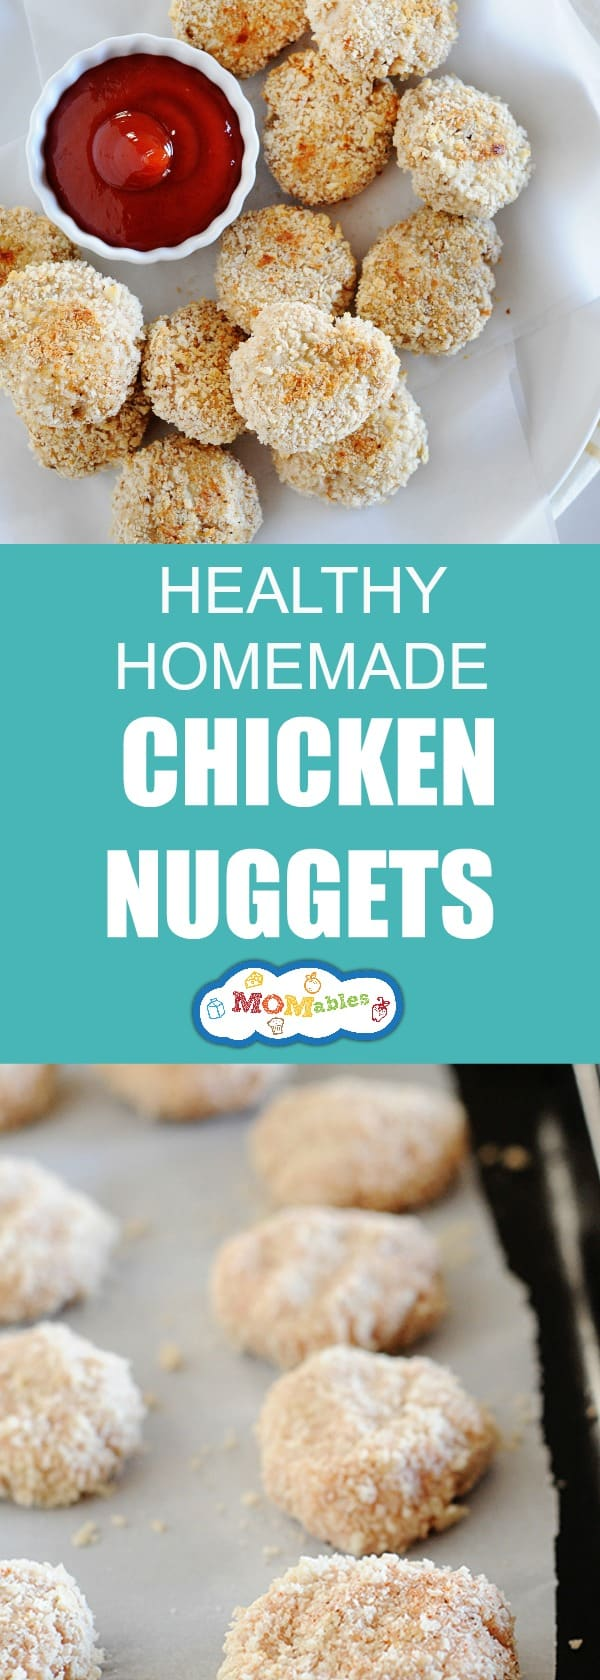 The texture kids love from the golden arches made at home with chicken.